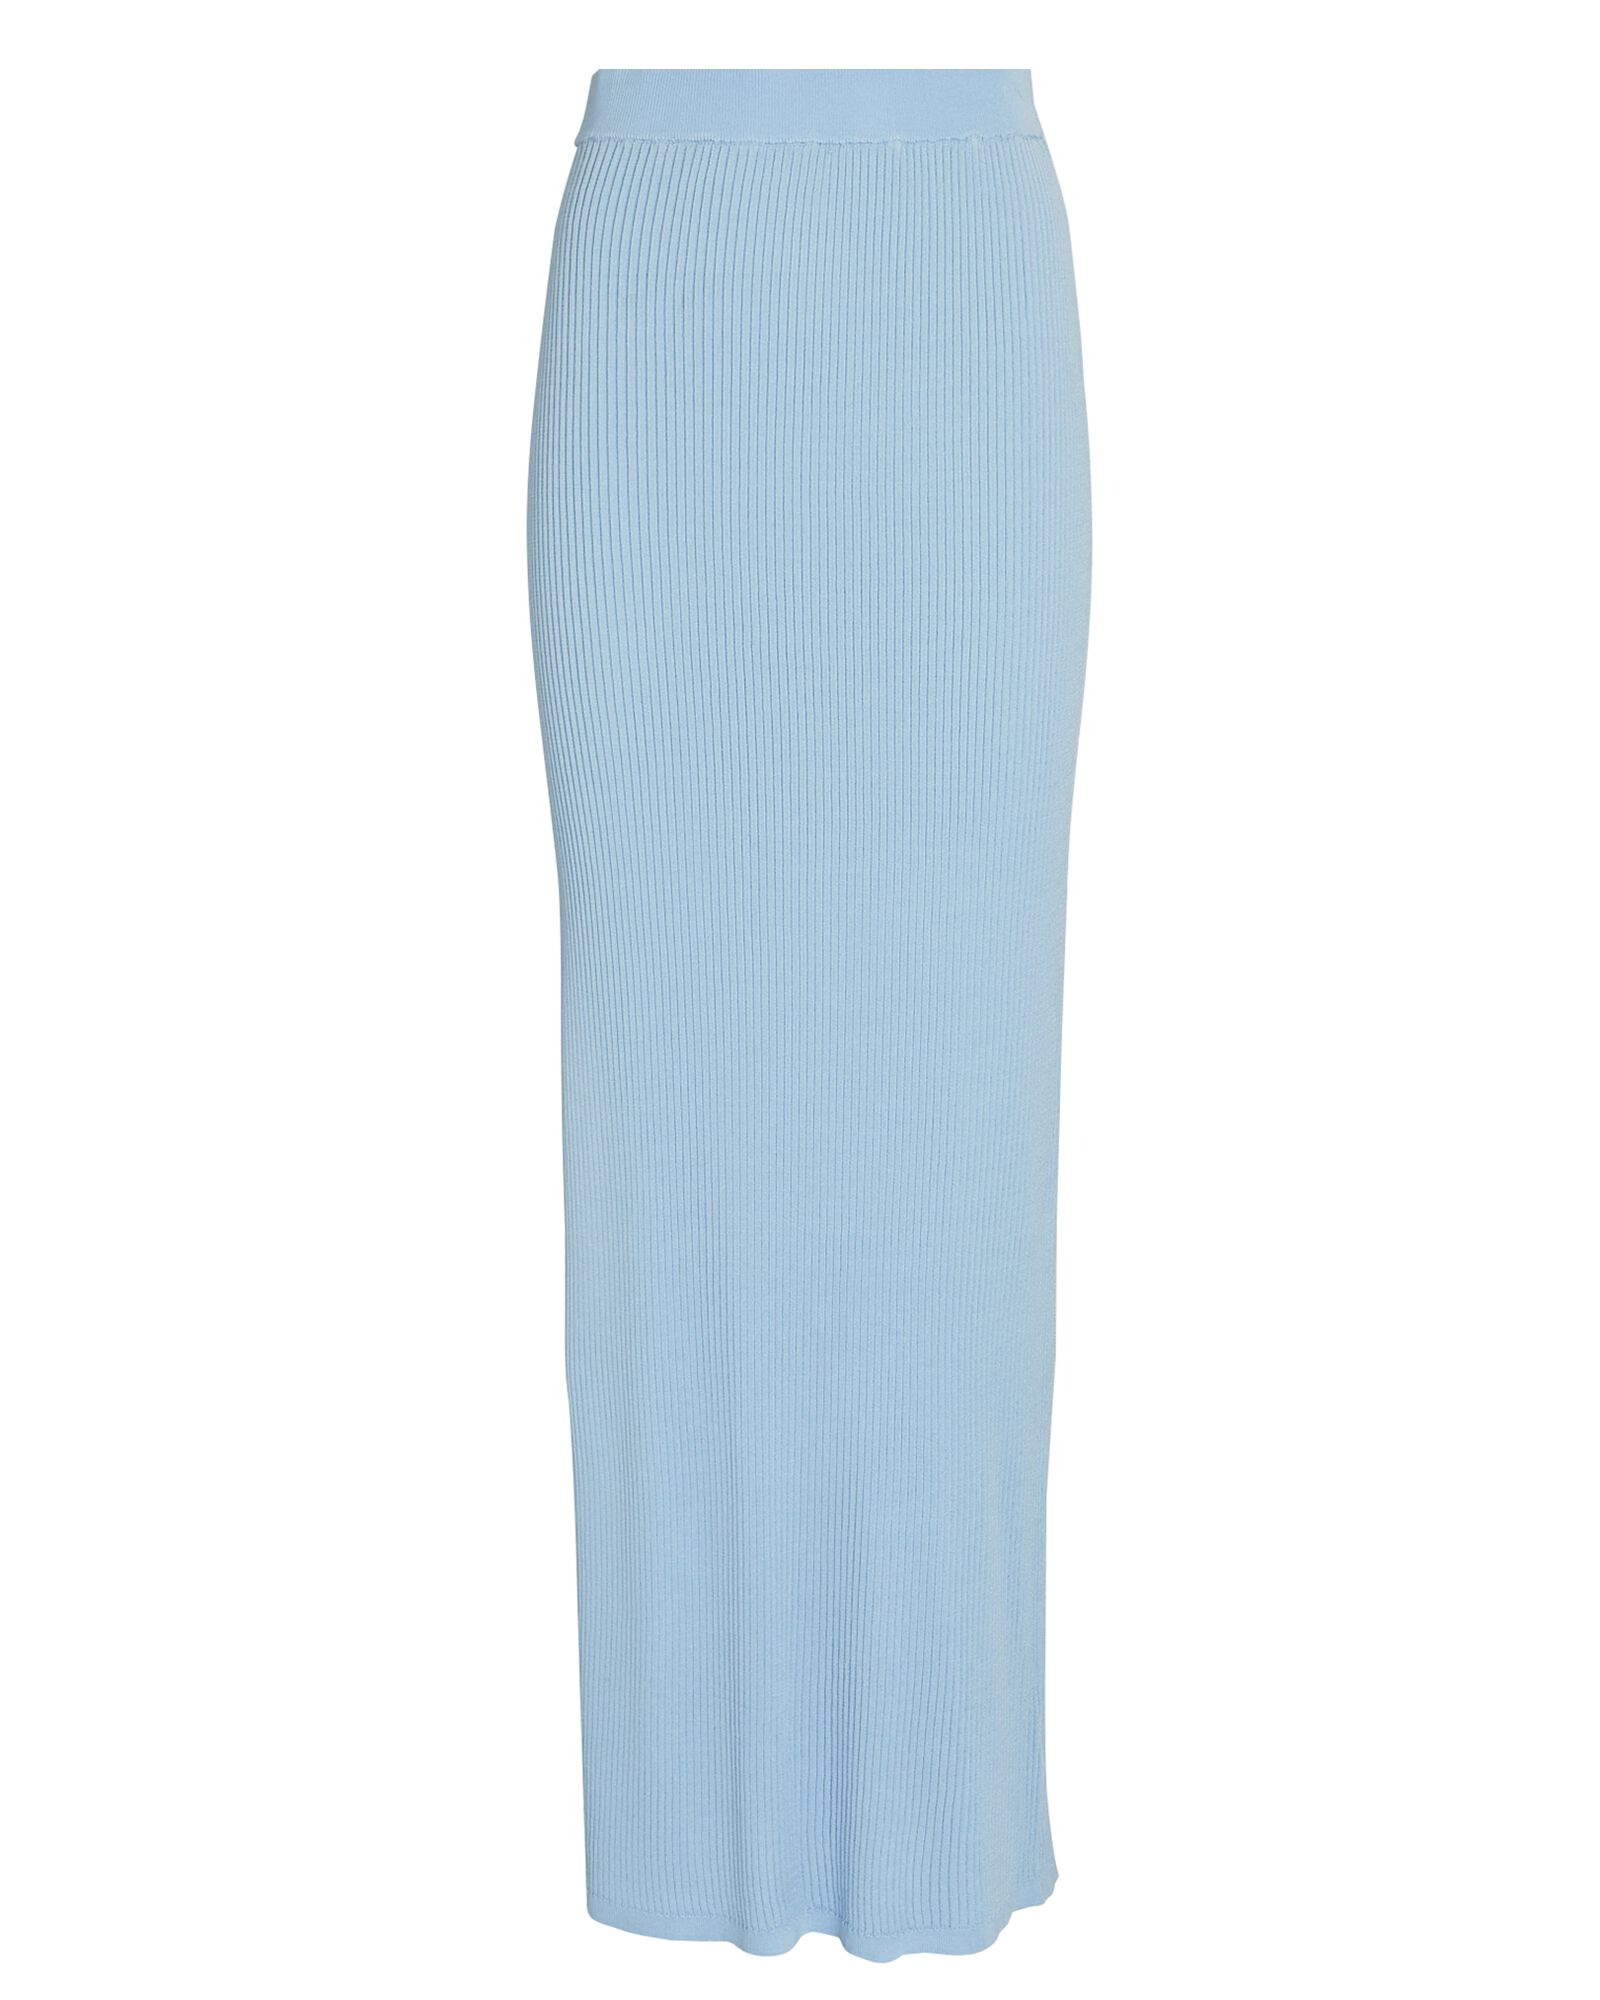 Rita Rib Knit Maxi Skirt, LIGHT BLUE, hi-res